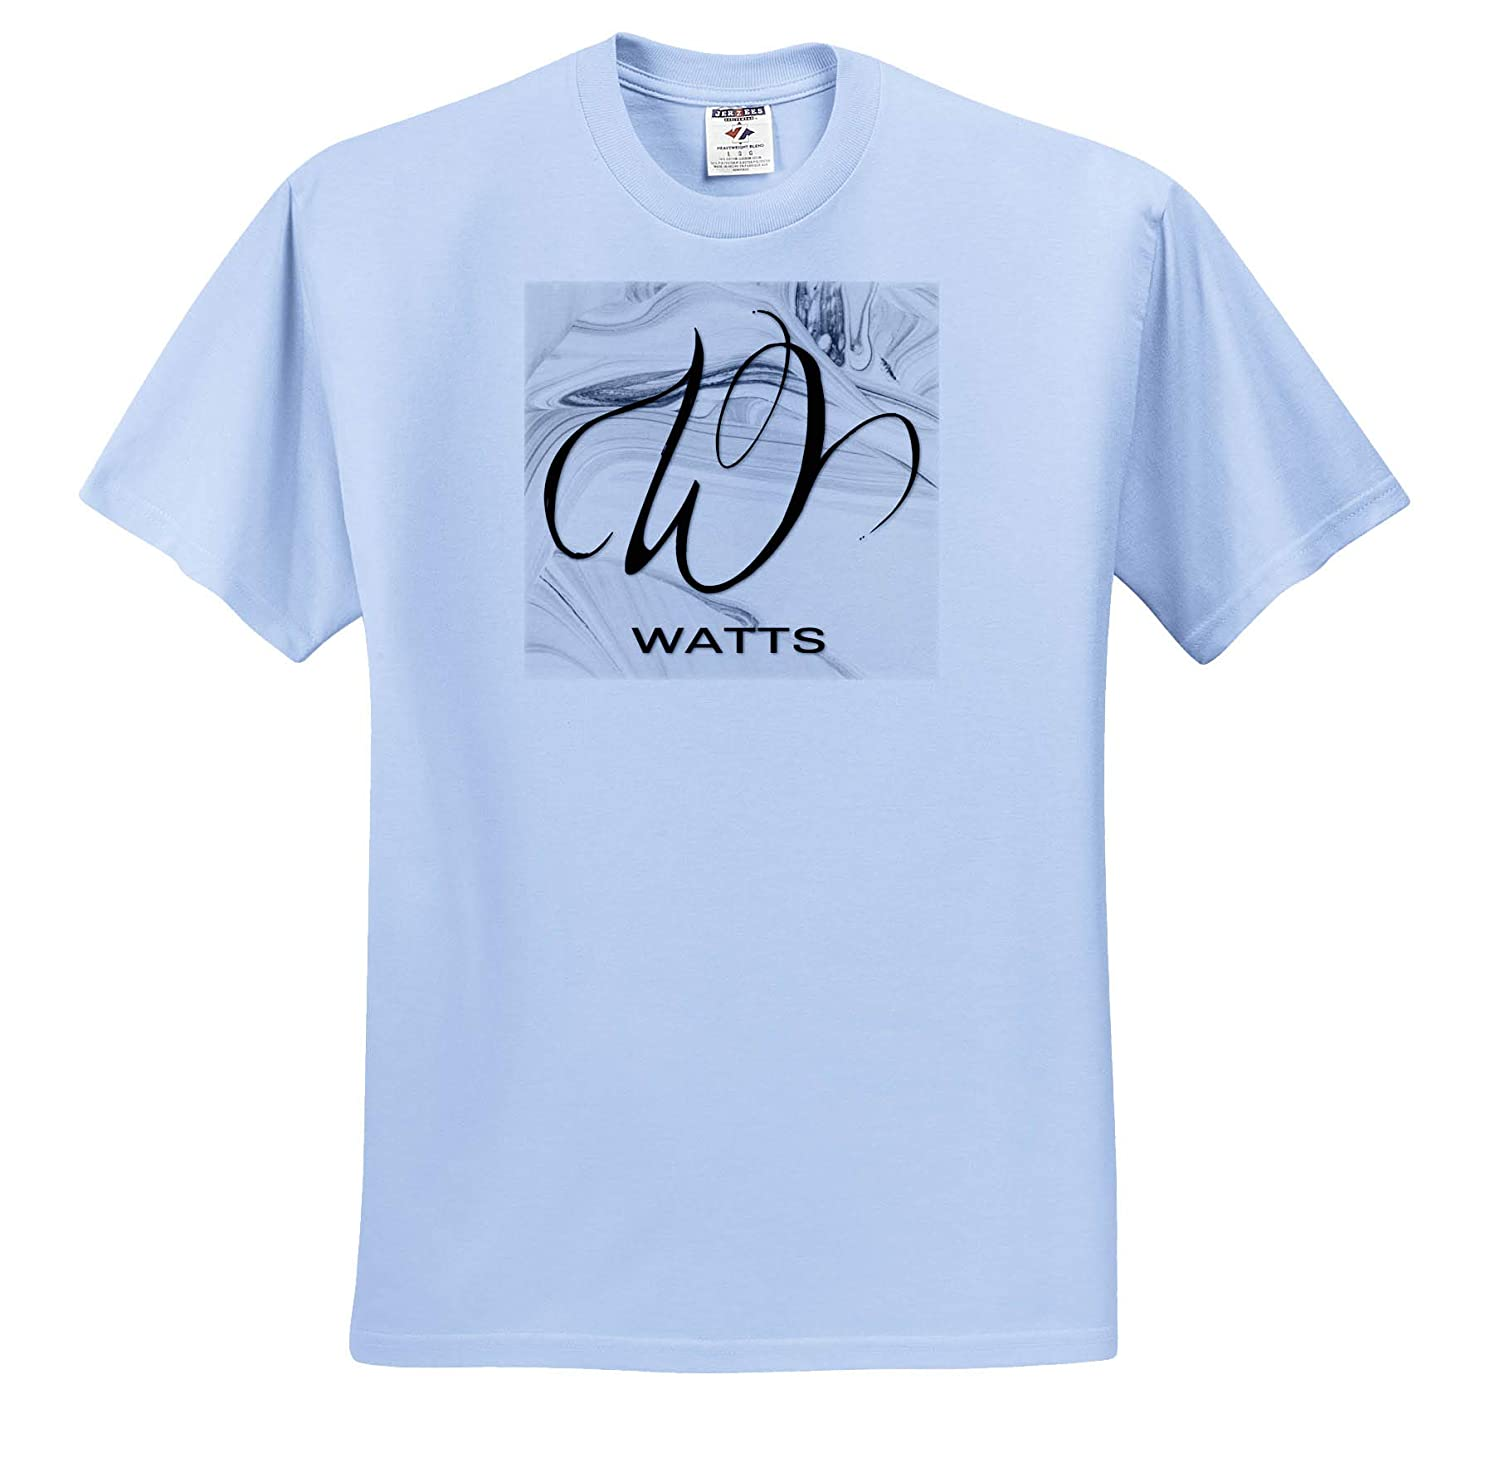 3dRose BrooklynMeme Monograms White Marble Monogram W Watts Adult T-Shirt XL ts/_310137